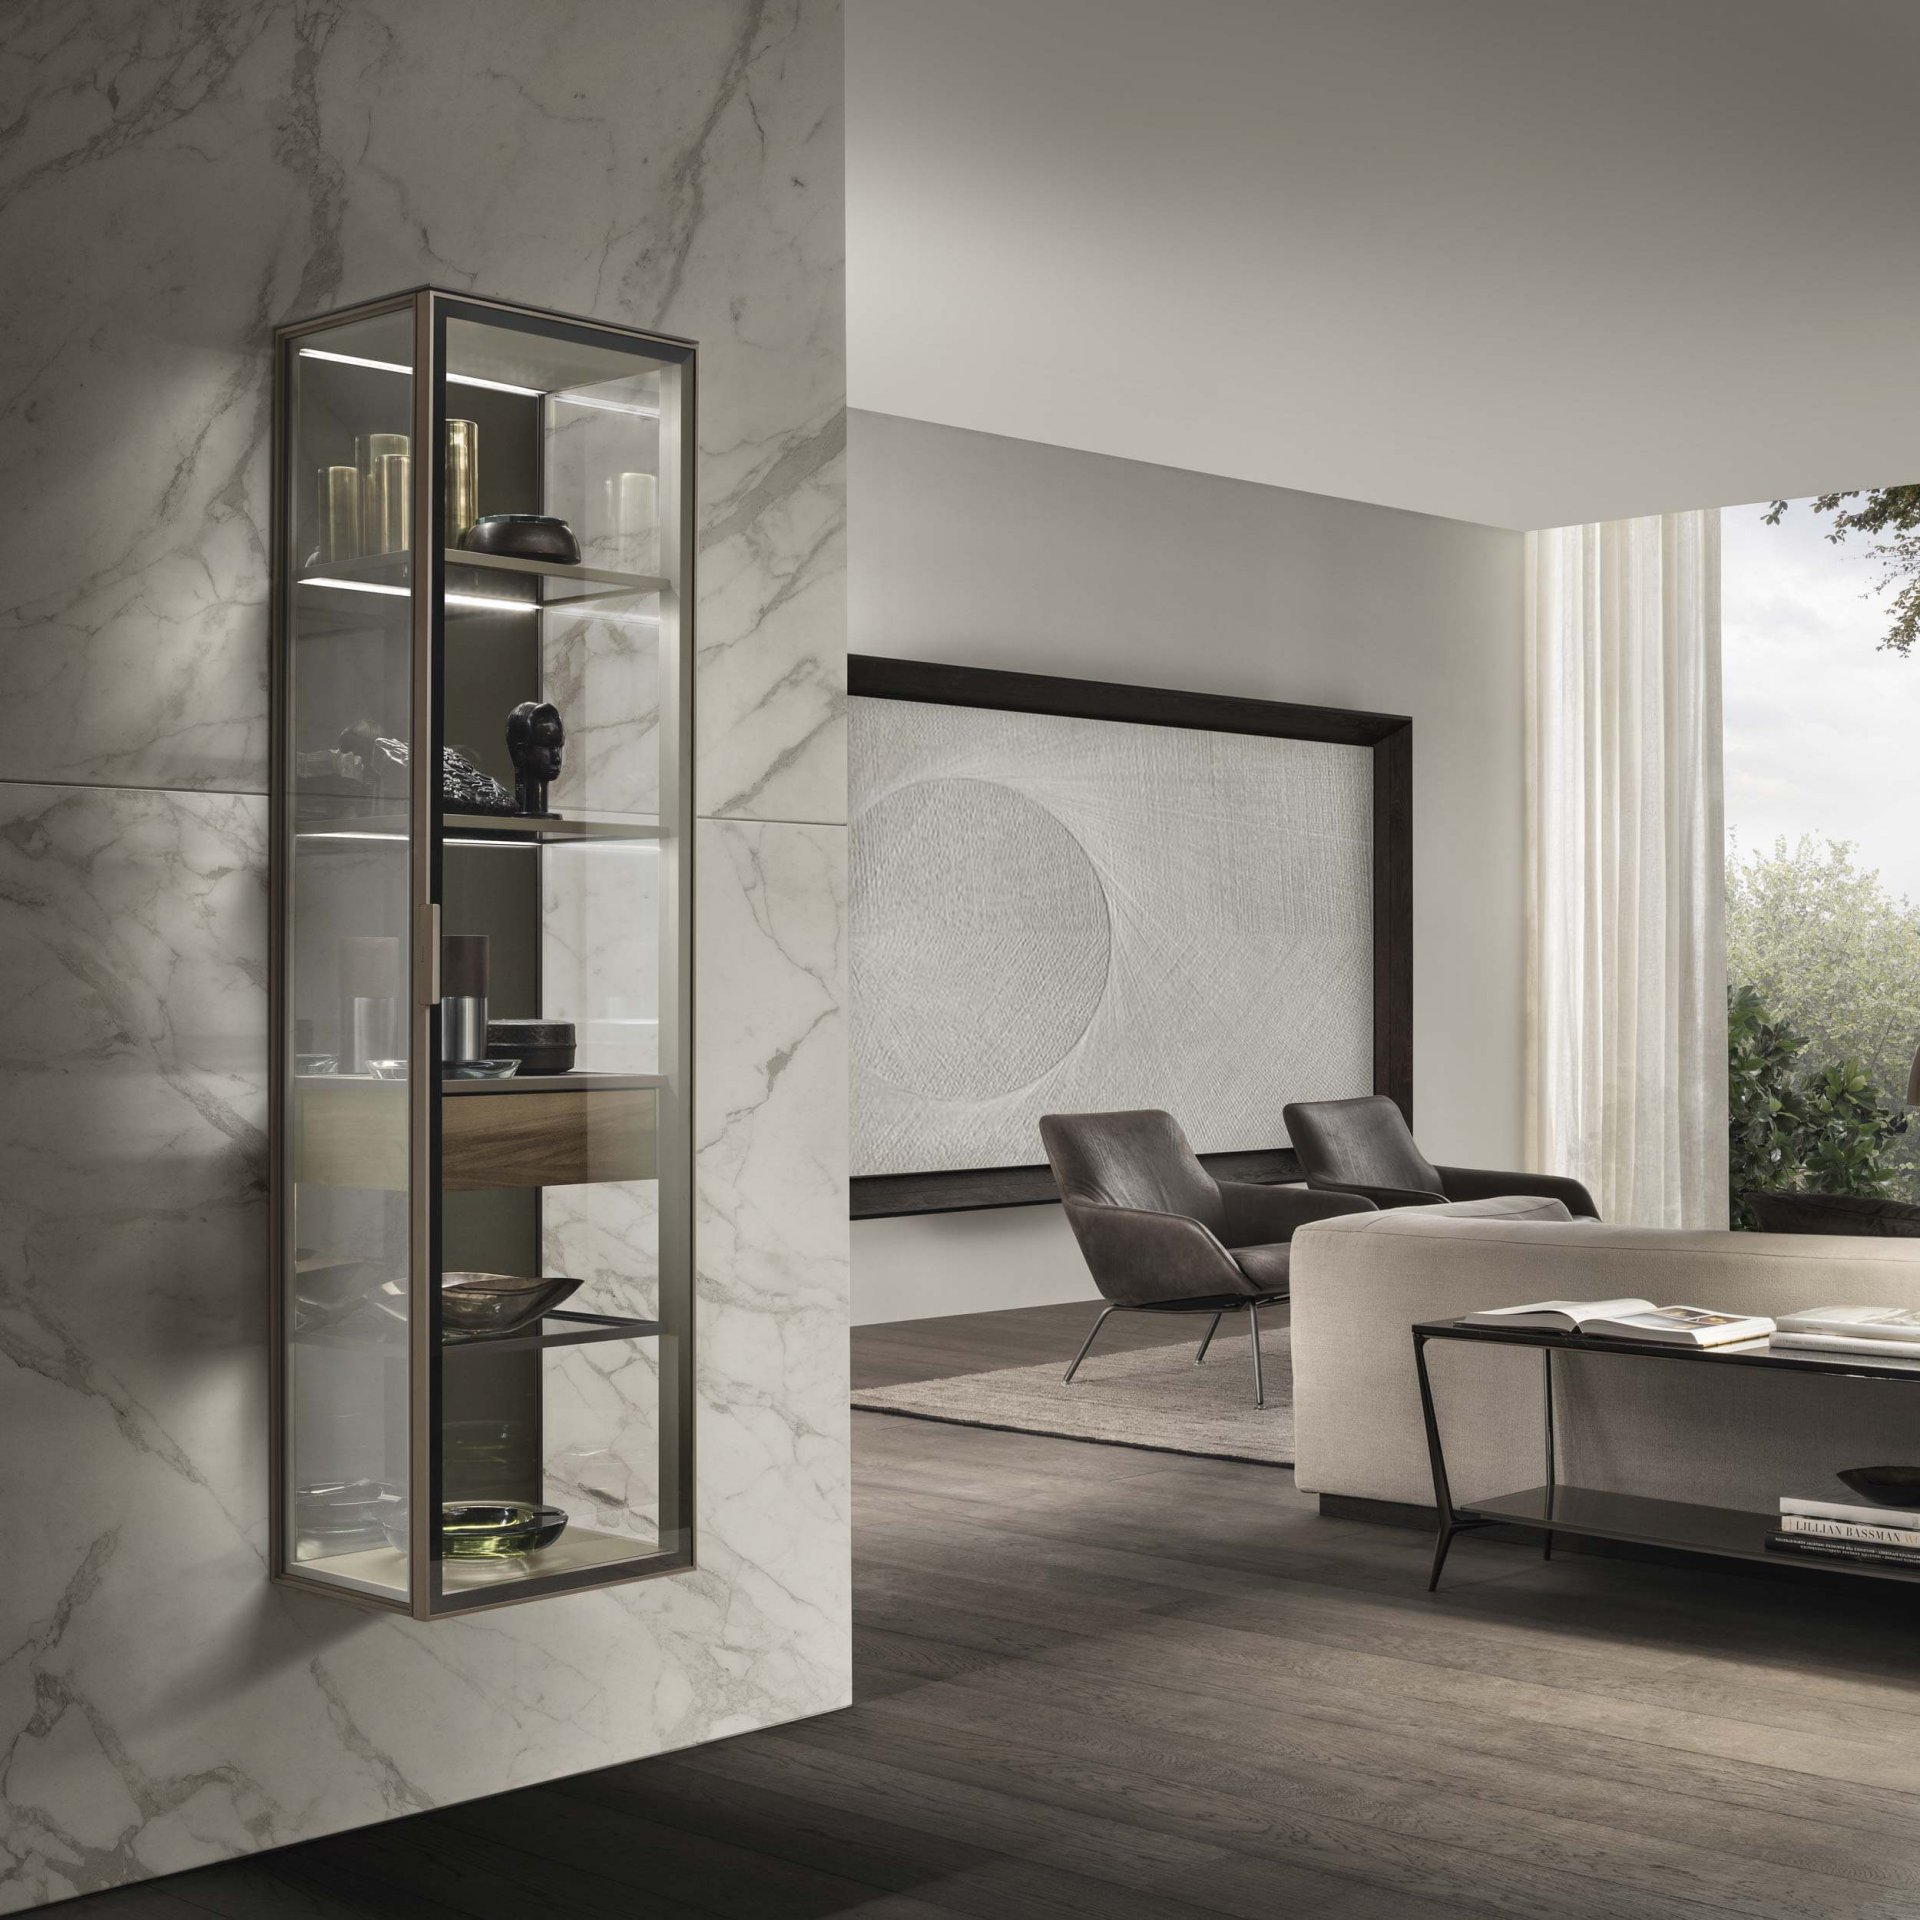 Suspended cabinet with hinged door